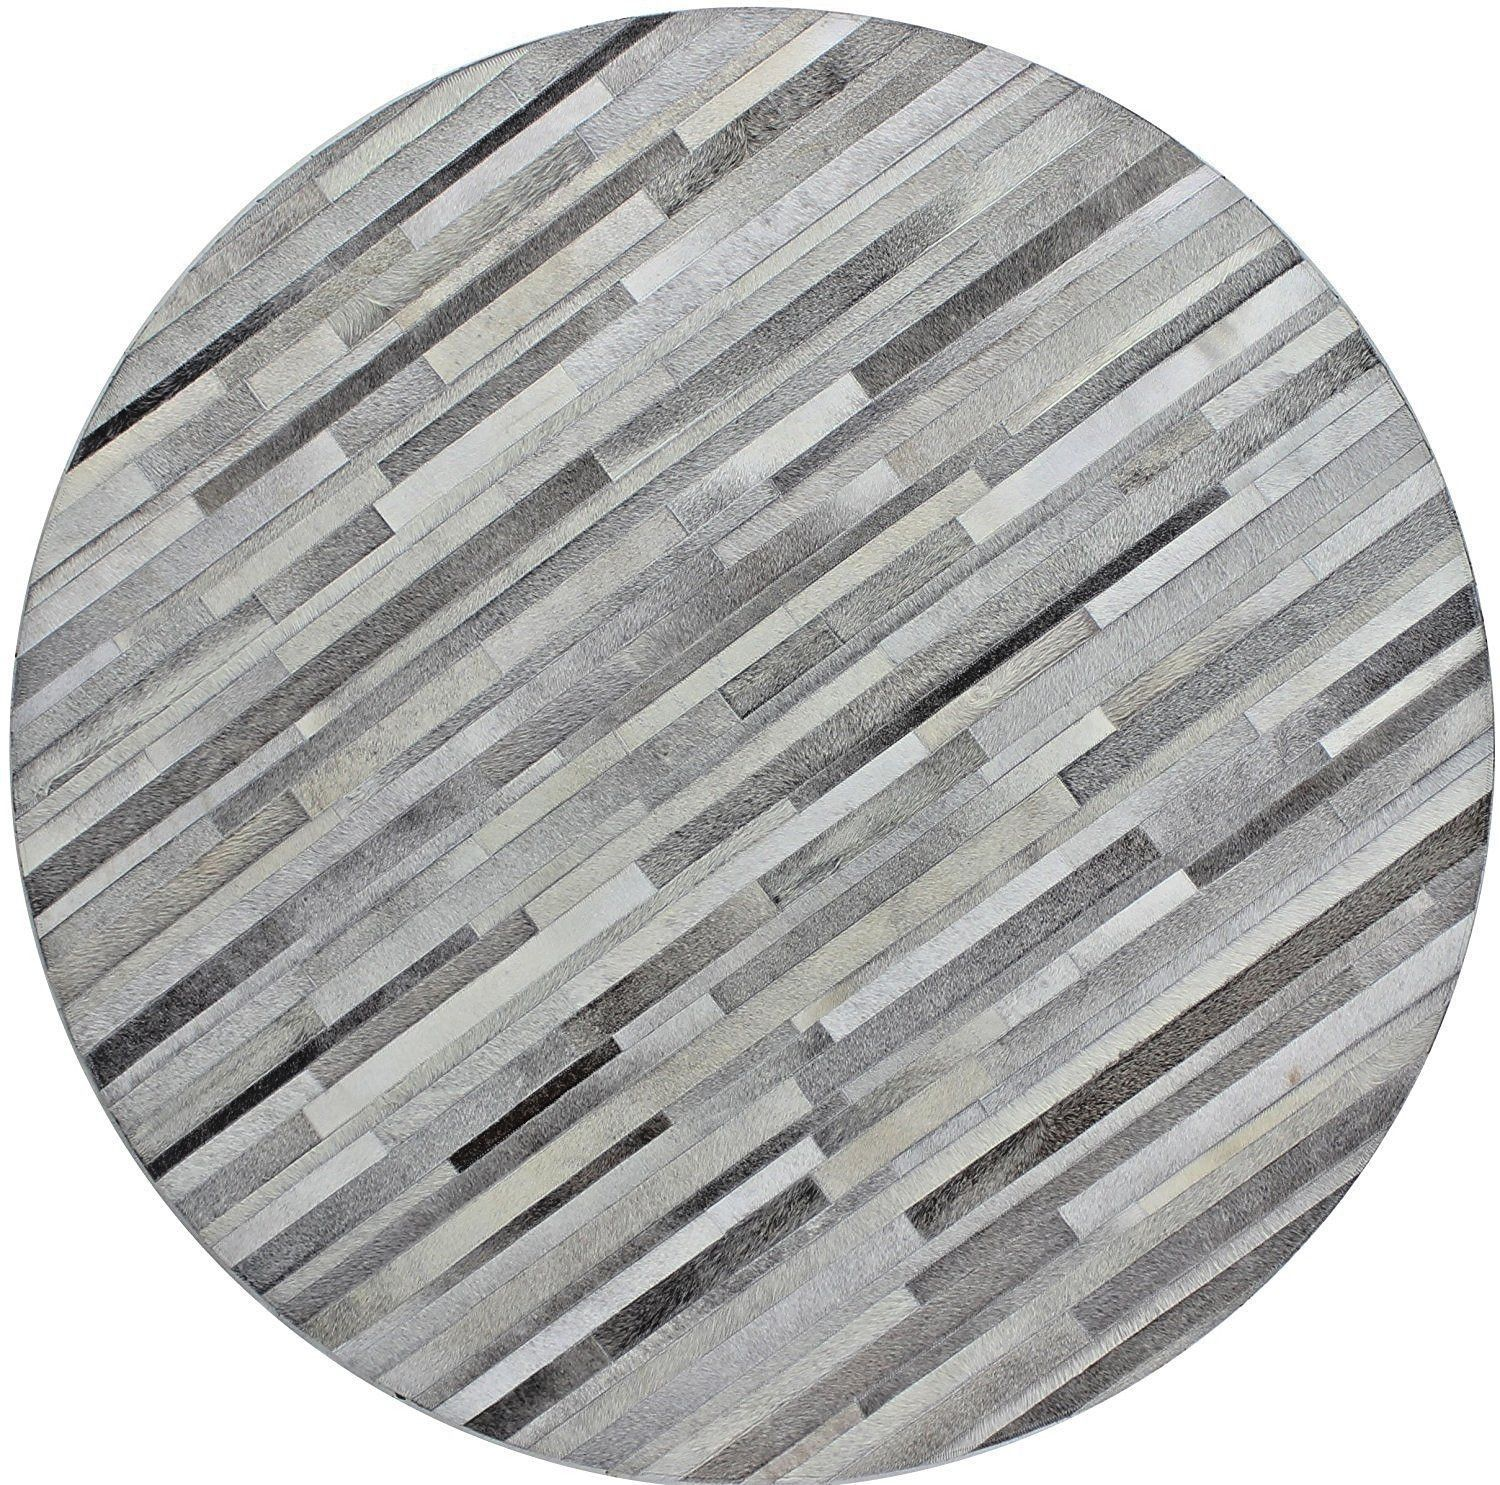 Primary image for Bashian Hunter Santa Fe Hand Stitched round Cowhide Area Rug Gray  6' x 6'